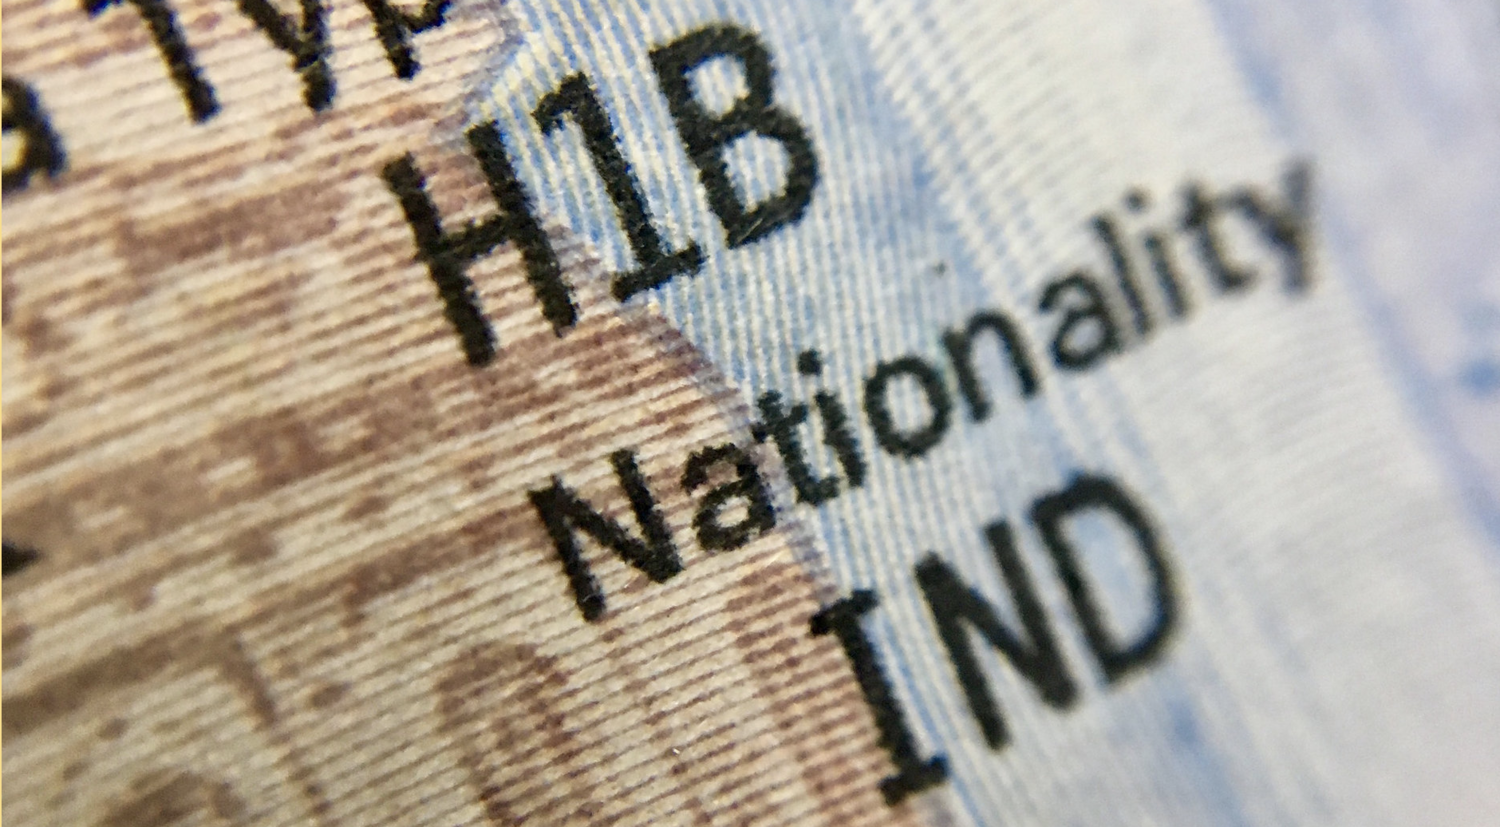 I have an H1b Visa-Can I marry a US Citizen? — Khunkhun Law